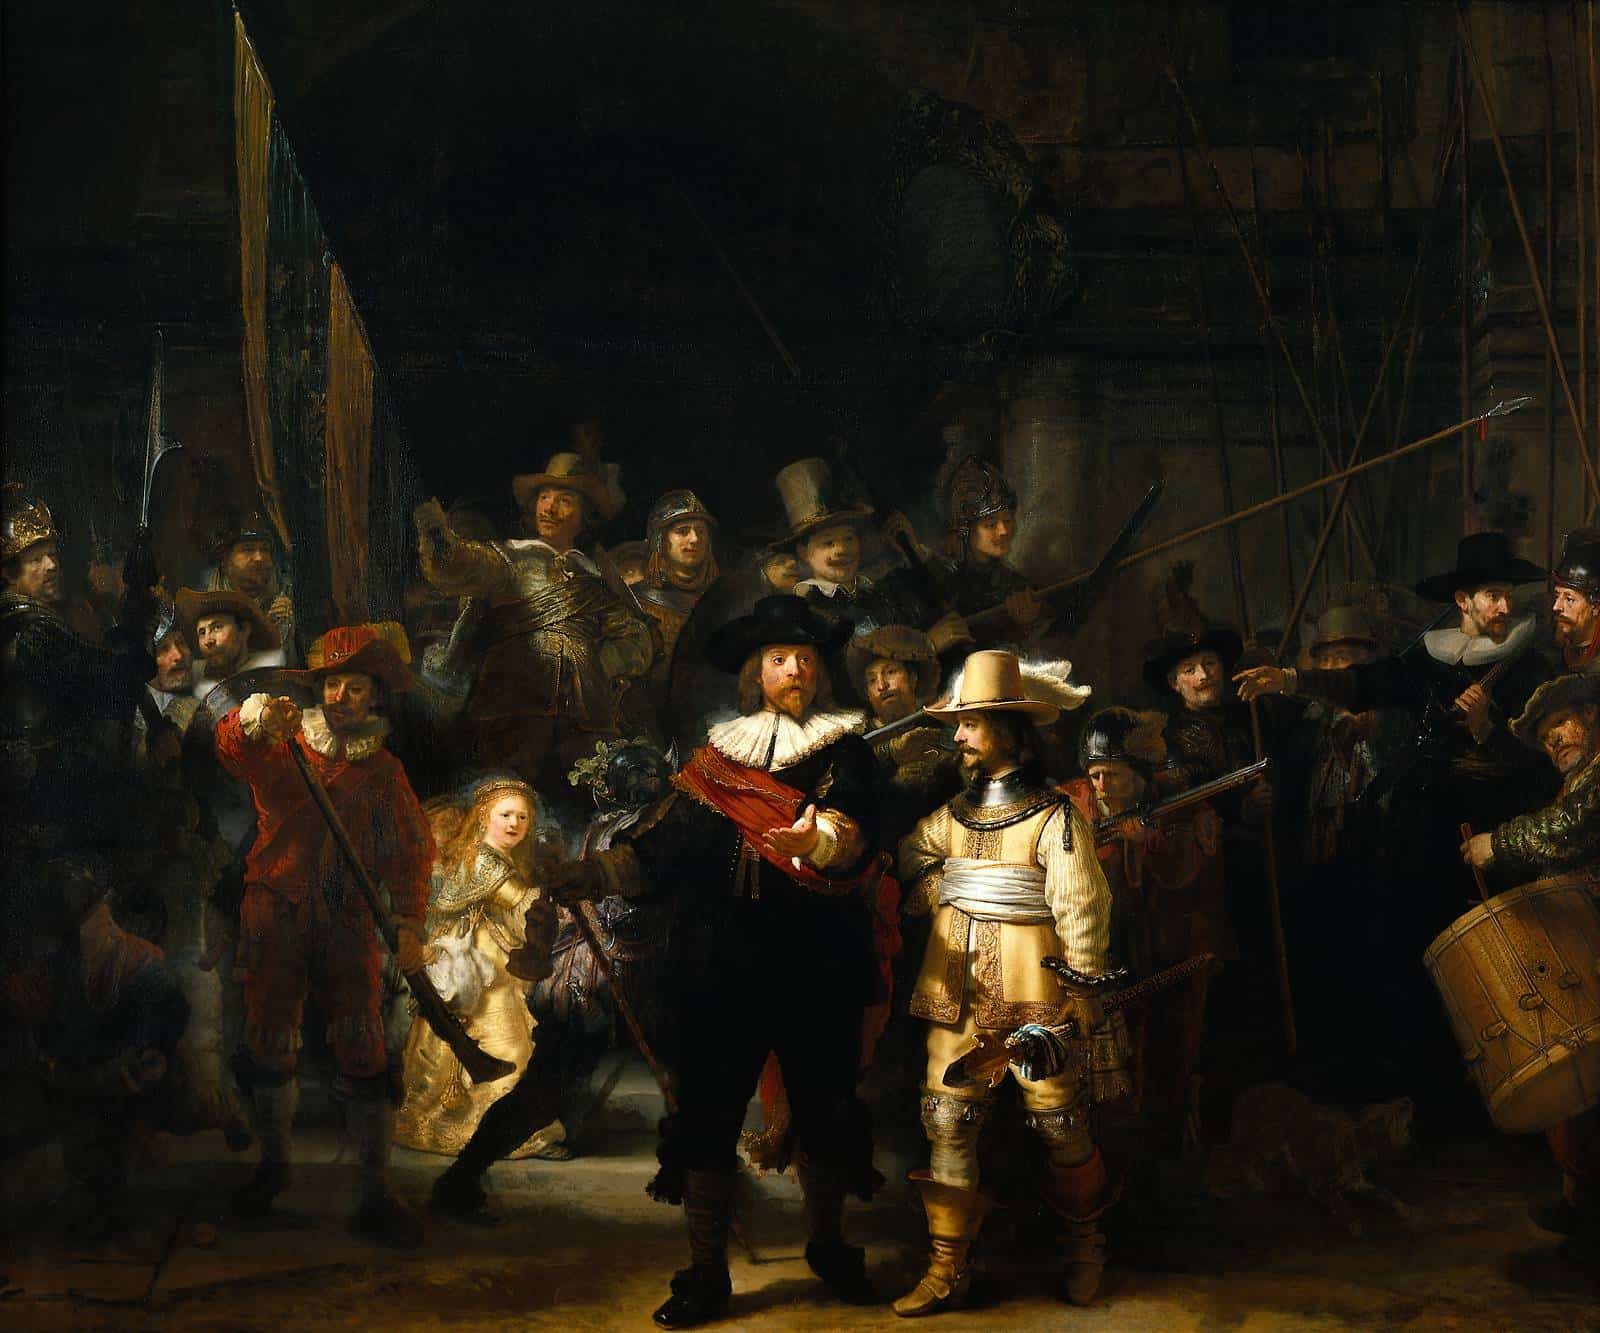 Flashmob Recreates Rembrandt's The Night Watch